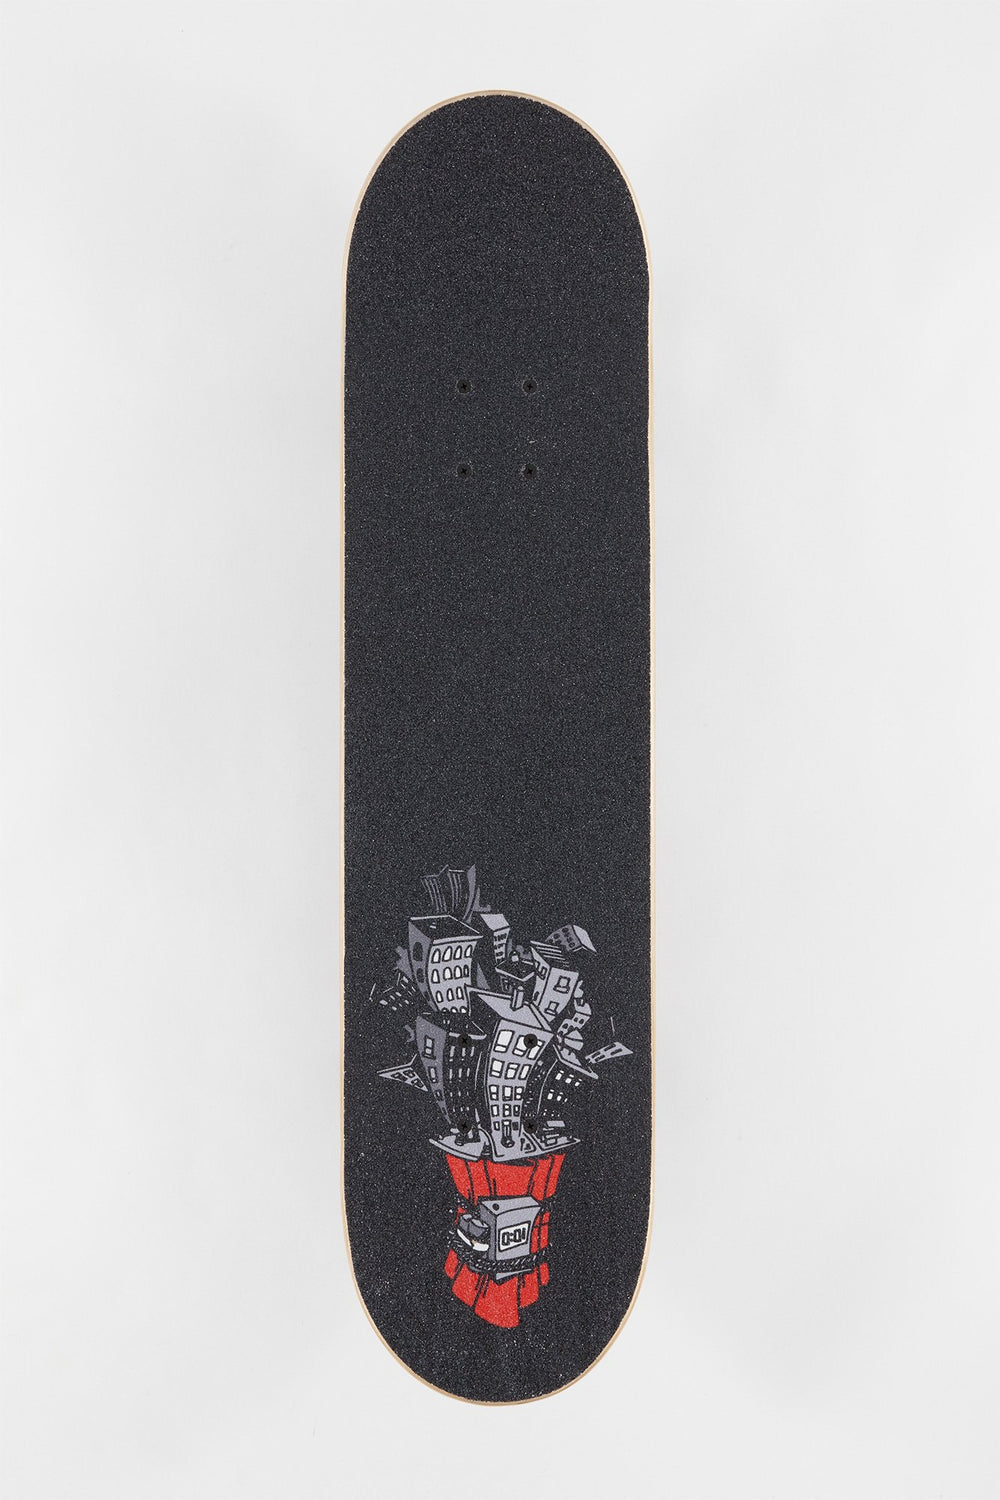 Zoo York Dynamite Skateboard 7.75